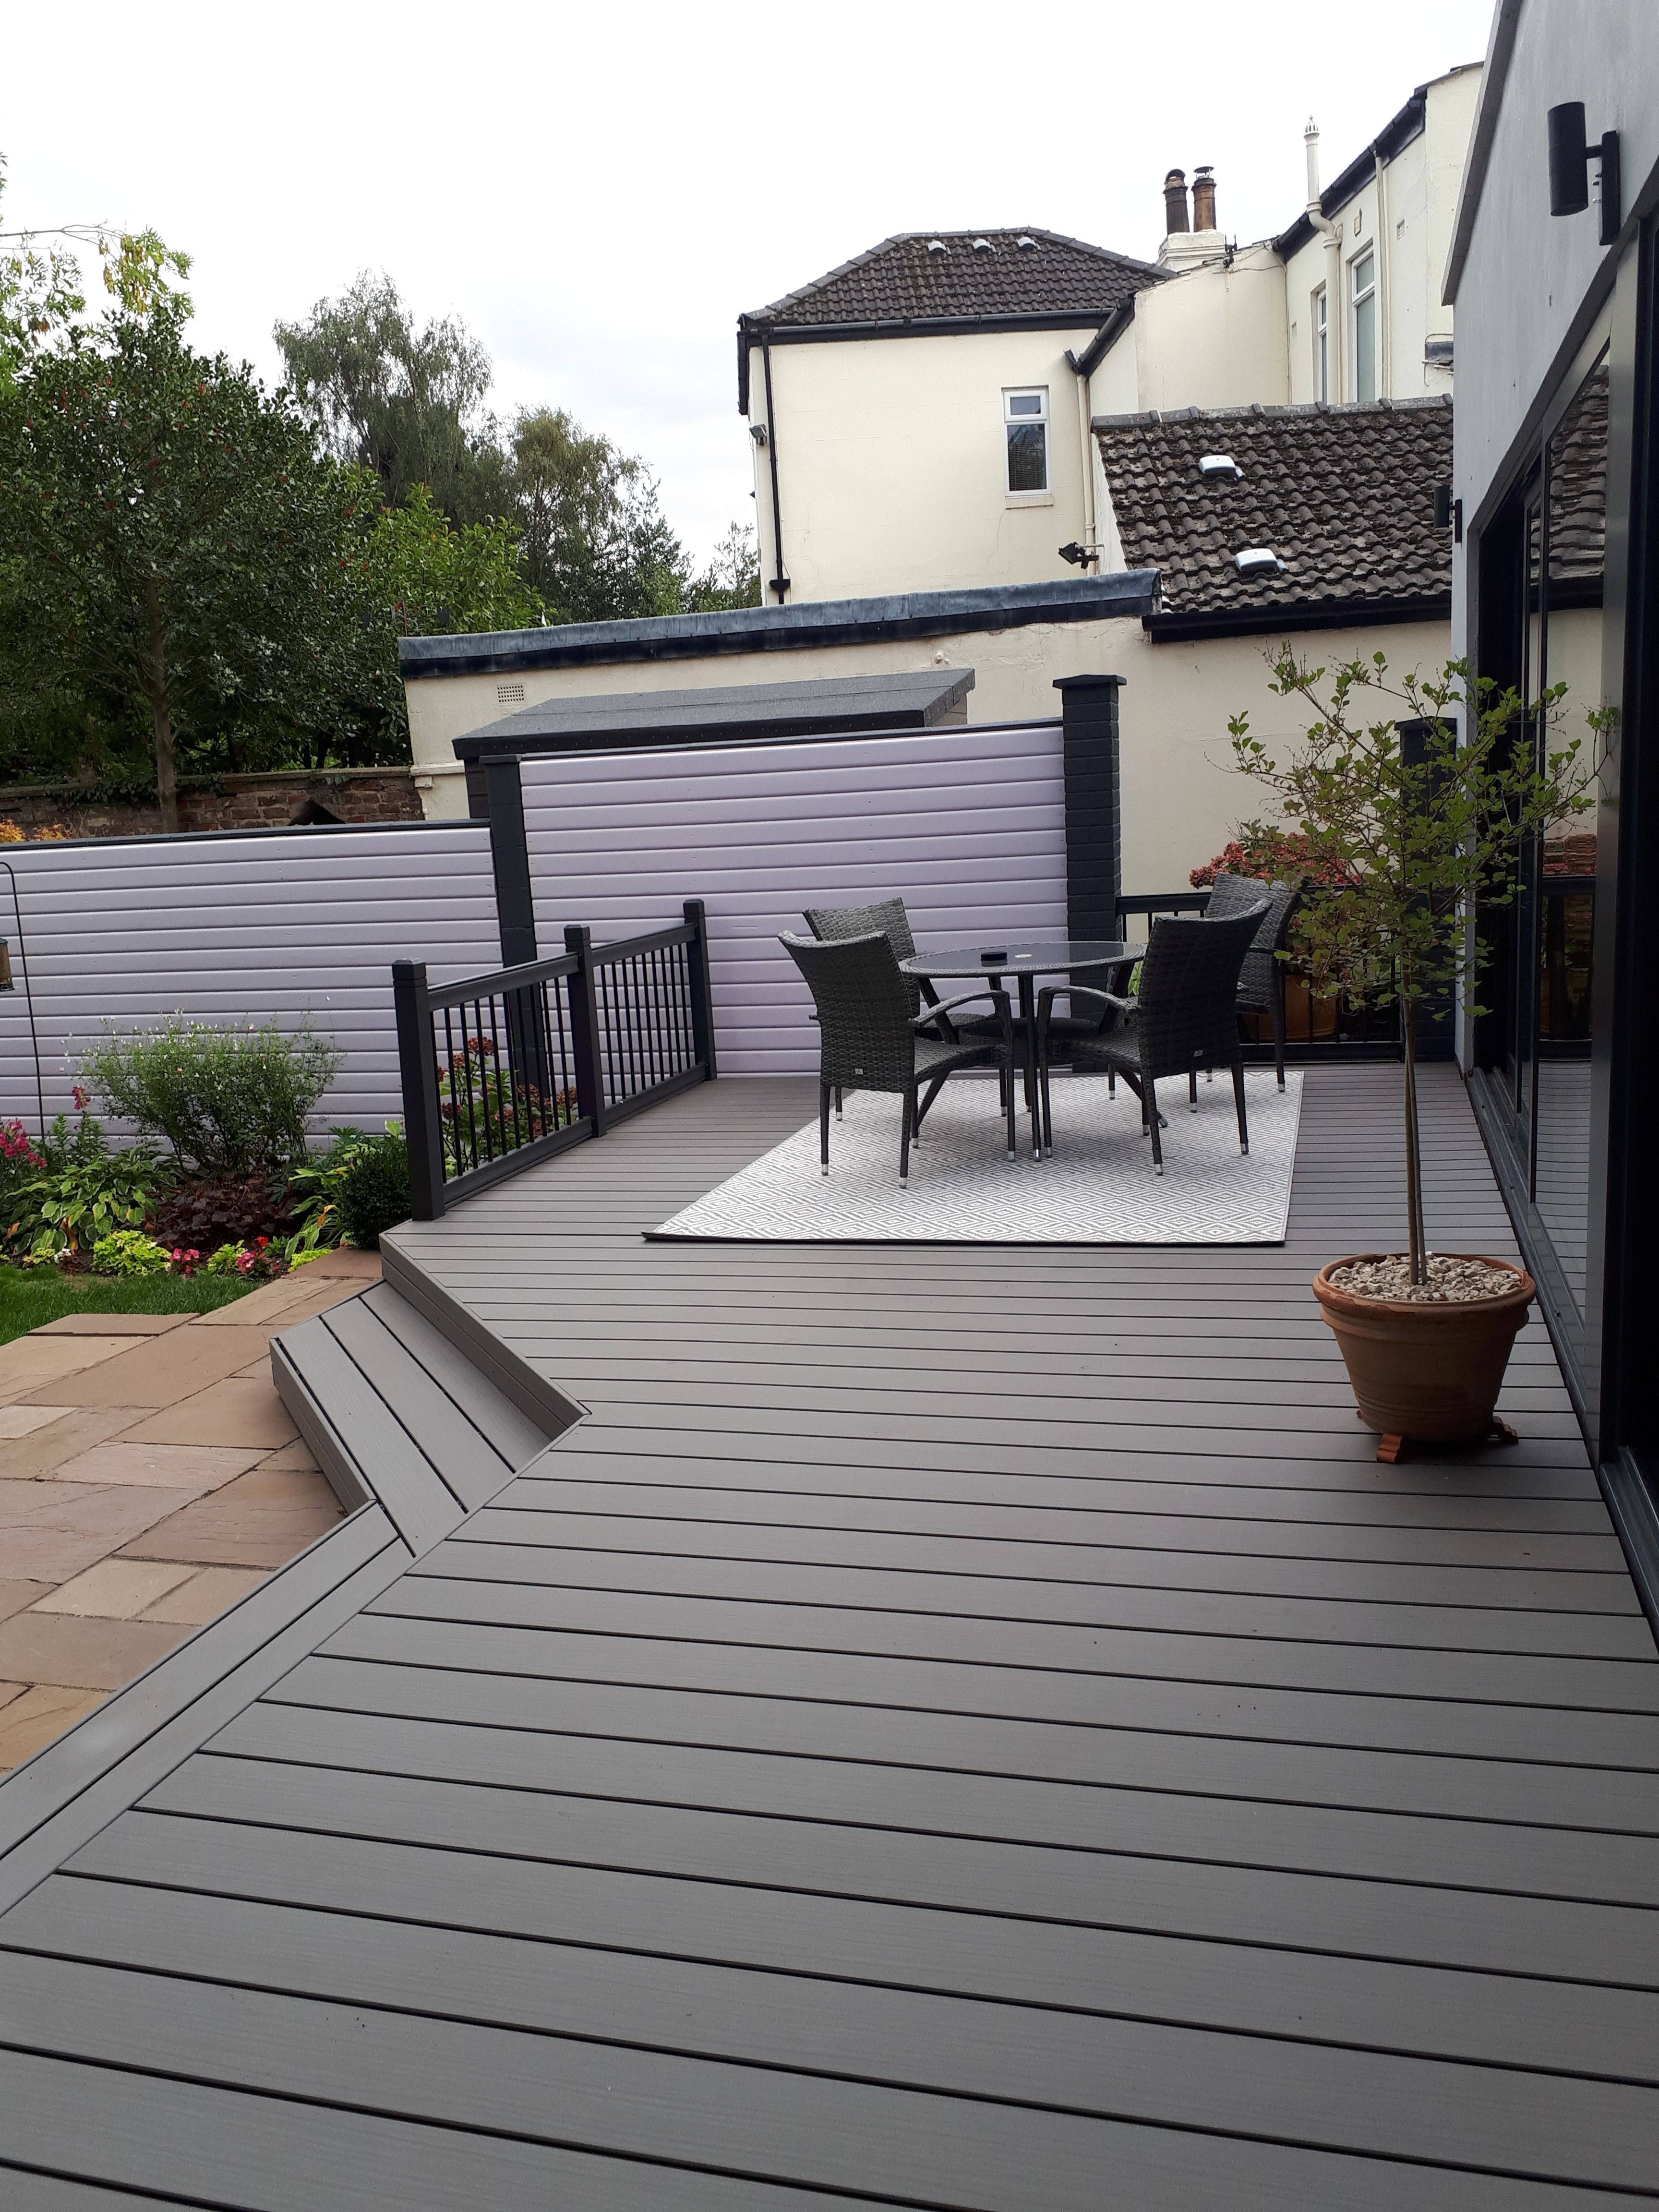 20 Timber Decking Designs That Can Append Beauty Of Your: 21x145 Solid German Boards In Premium Plus Slate Grey